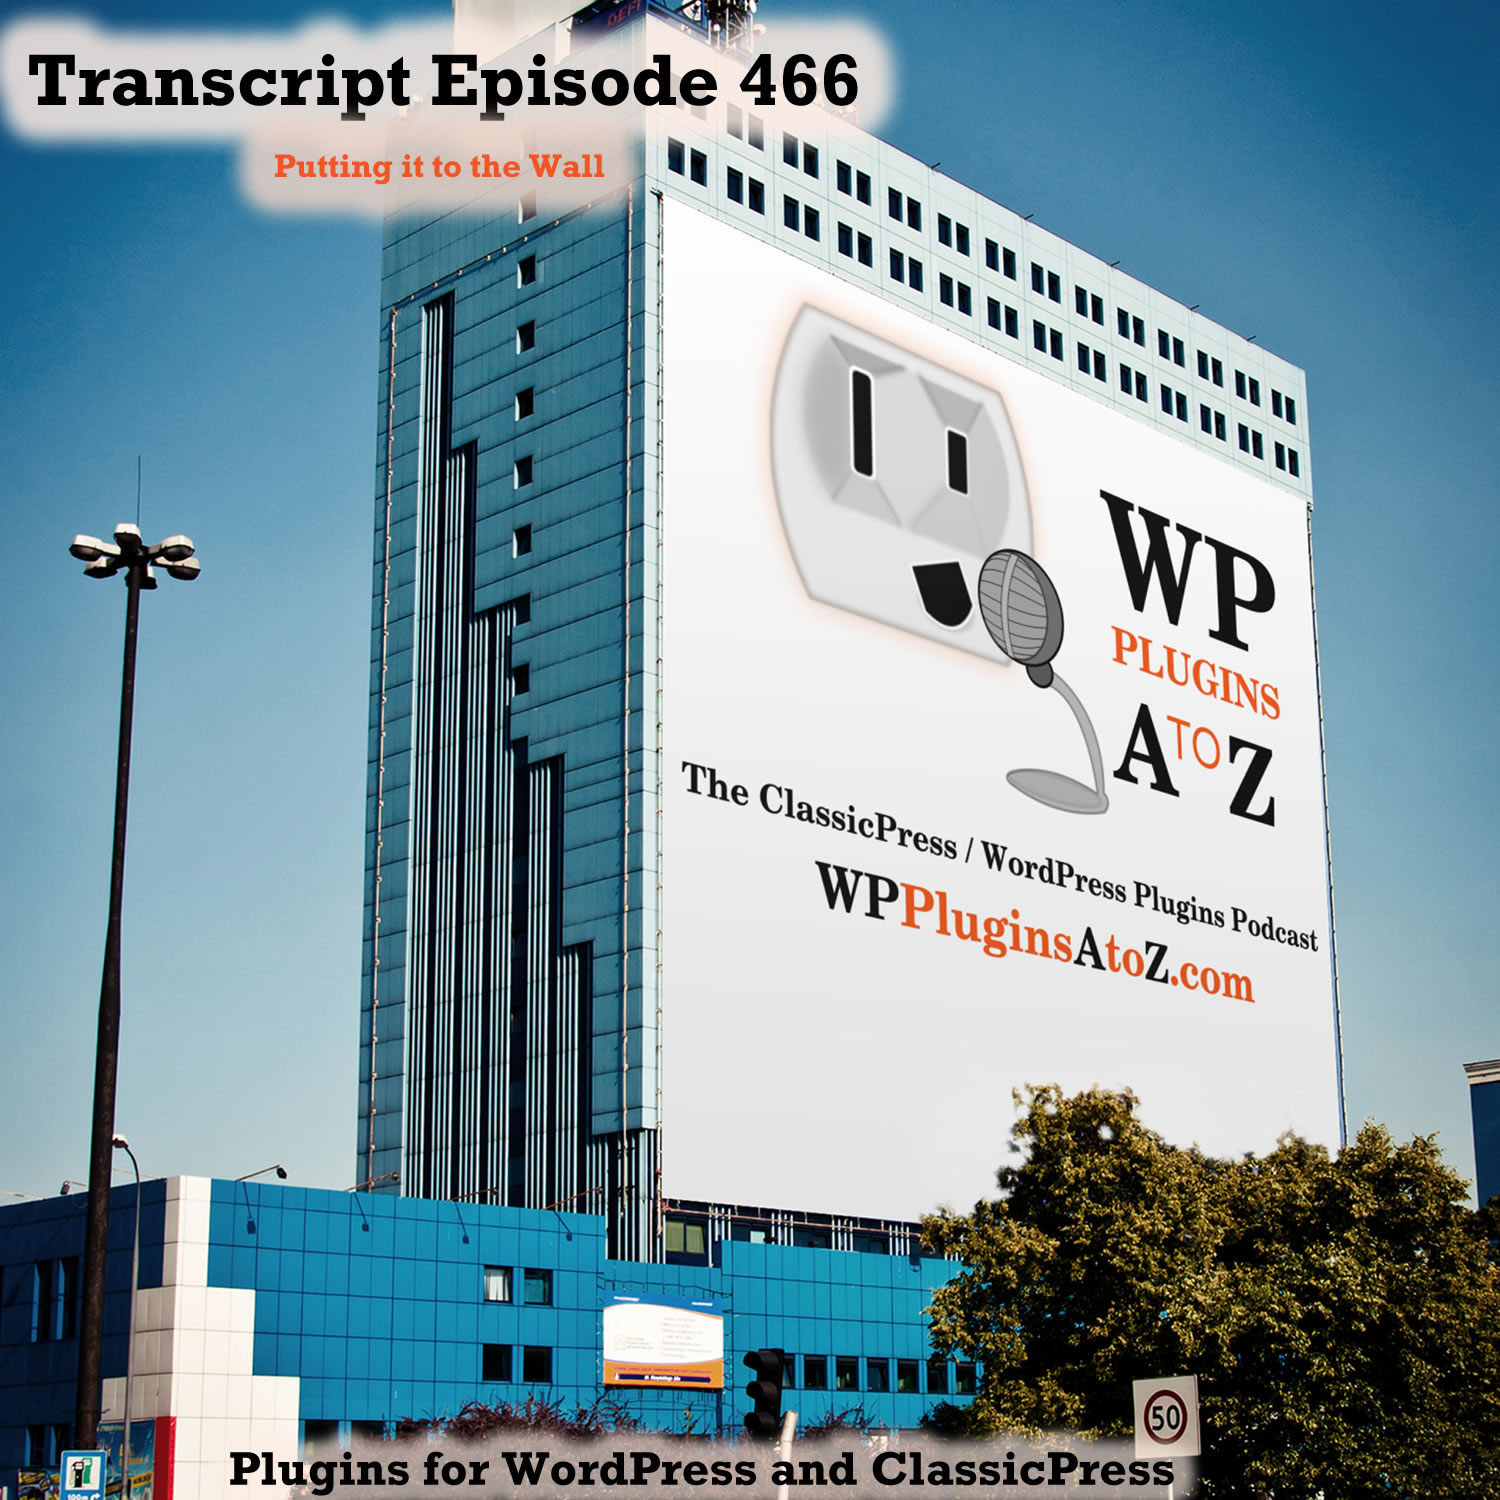 It's Episode 466 with plugins to Colour Your World, Zipping it all up, Insuring those products are available and ClassicPress Options. It's all coming up on WordPress Plugins A-Z!